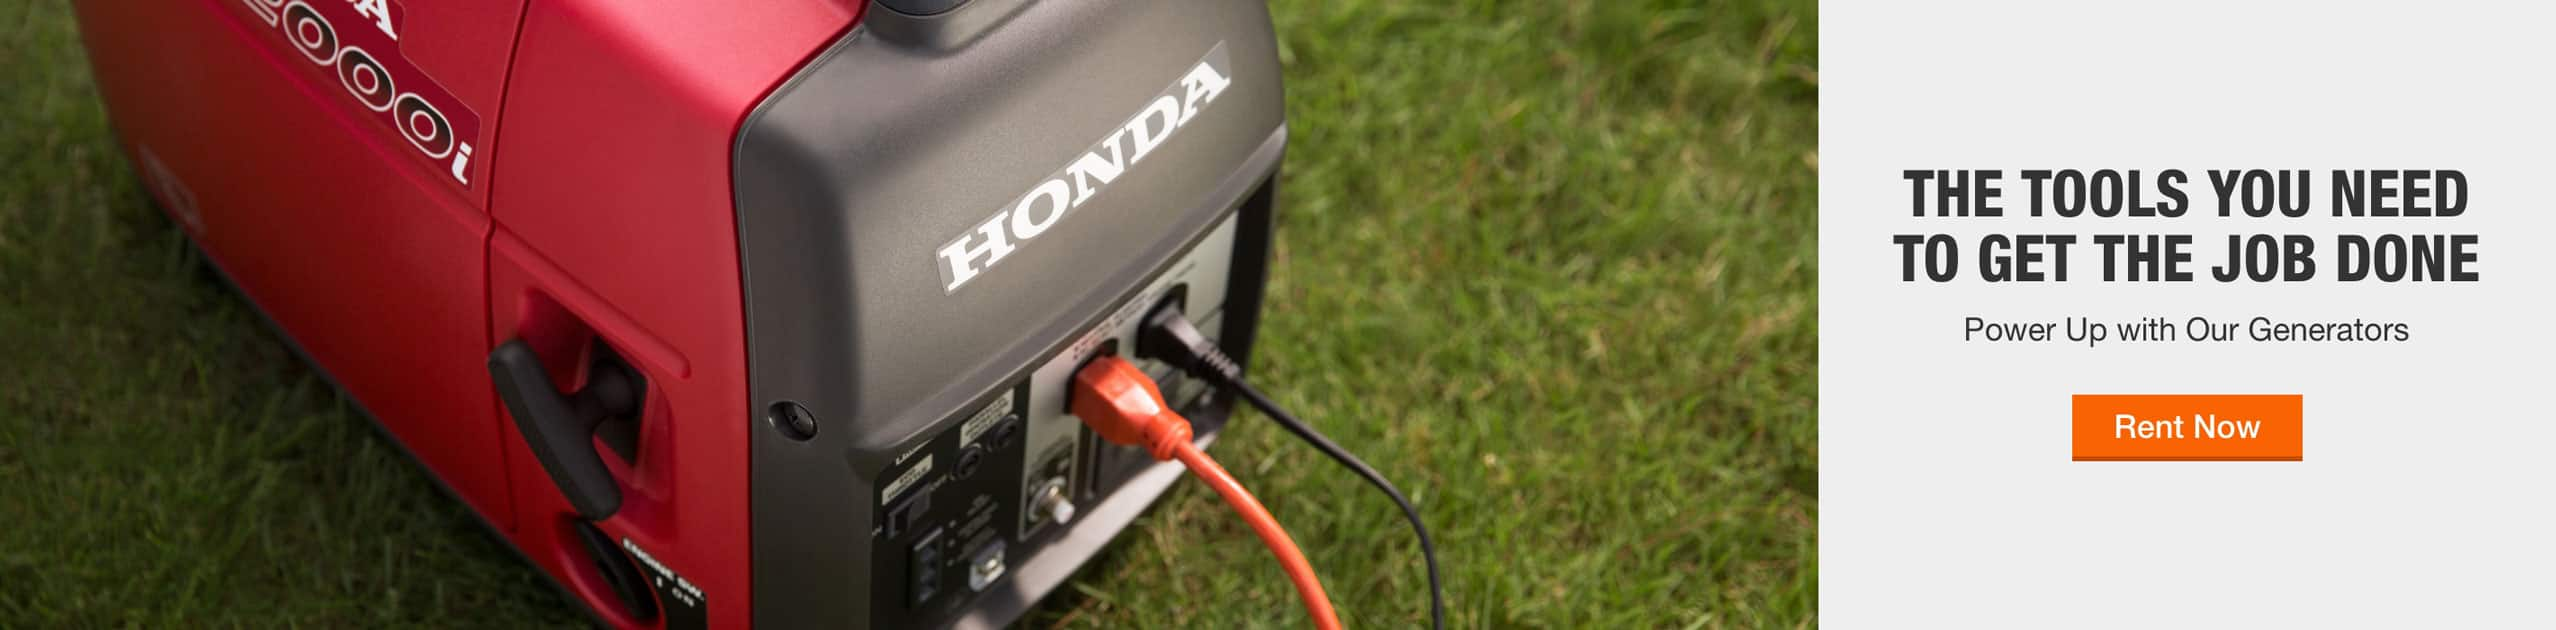 THE TOOLS YOU NEED TO GET THE JOB DONE - Power Up with Our Generators - Rent Now